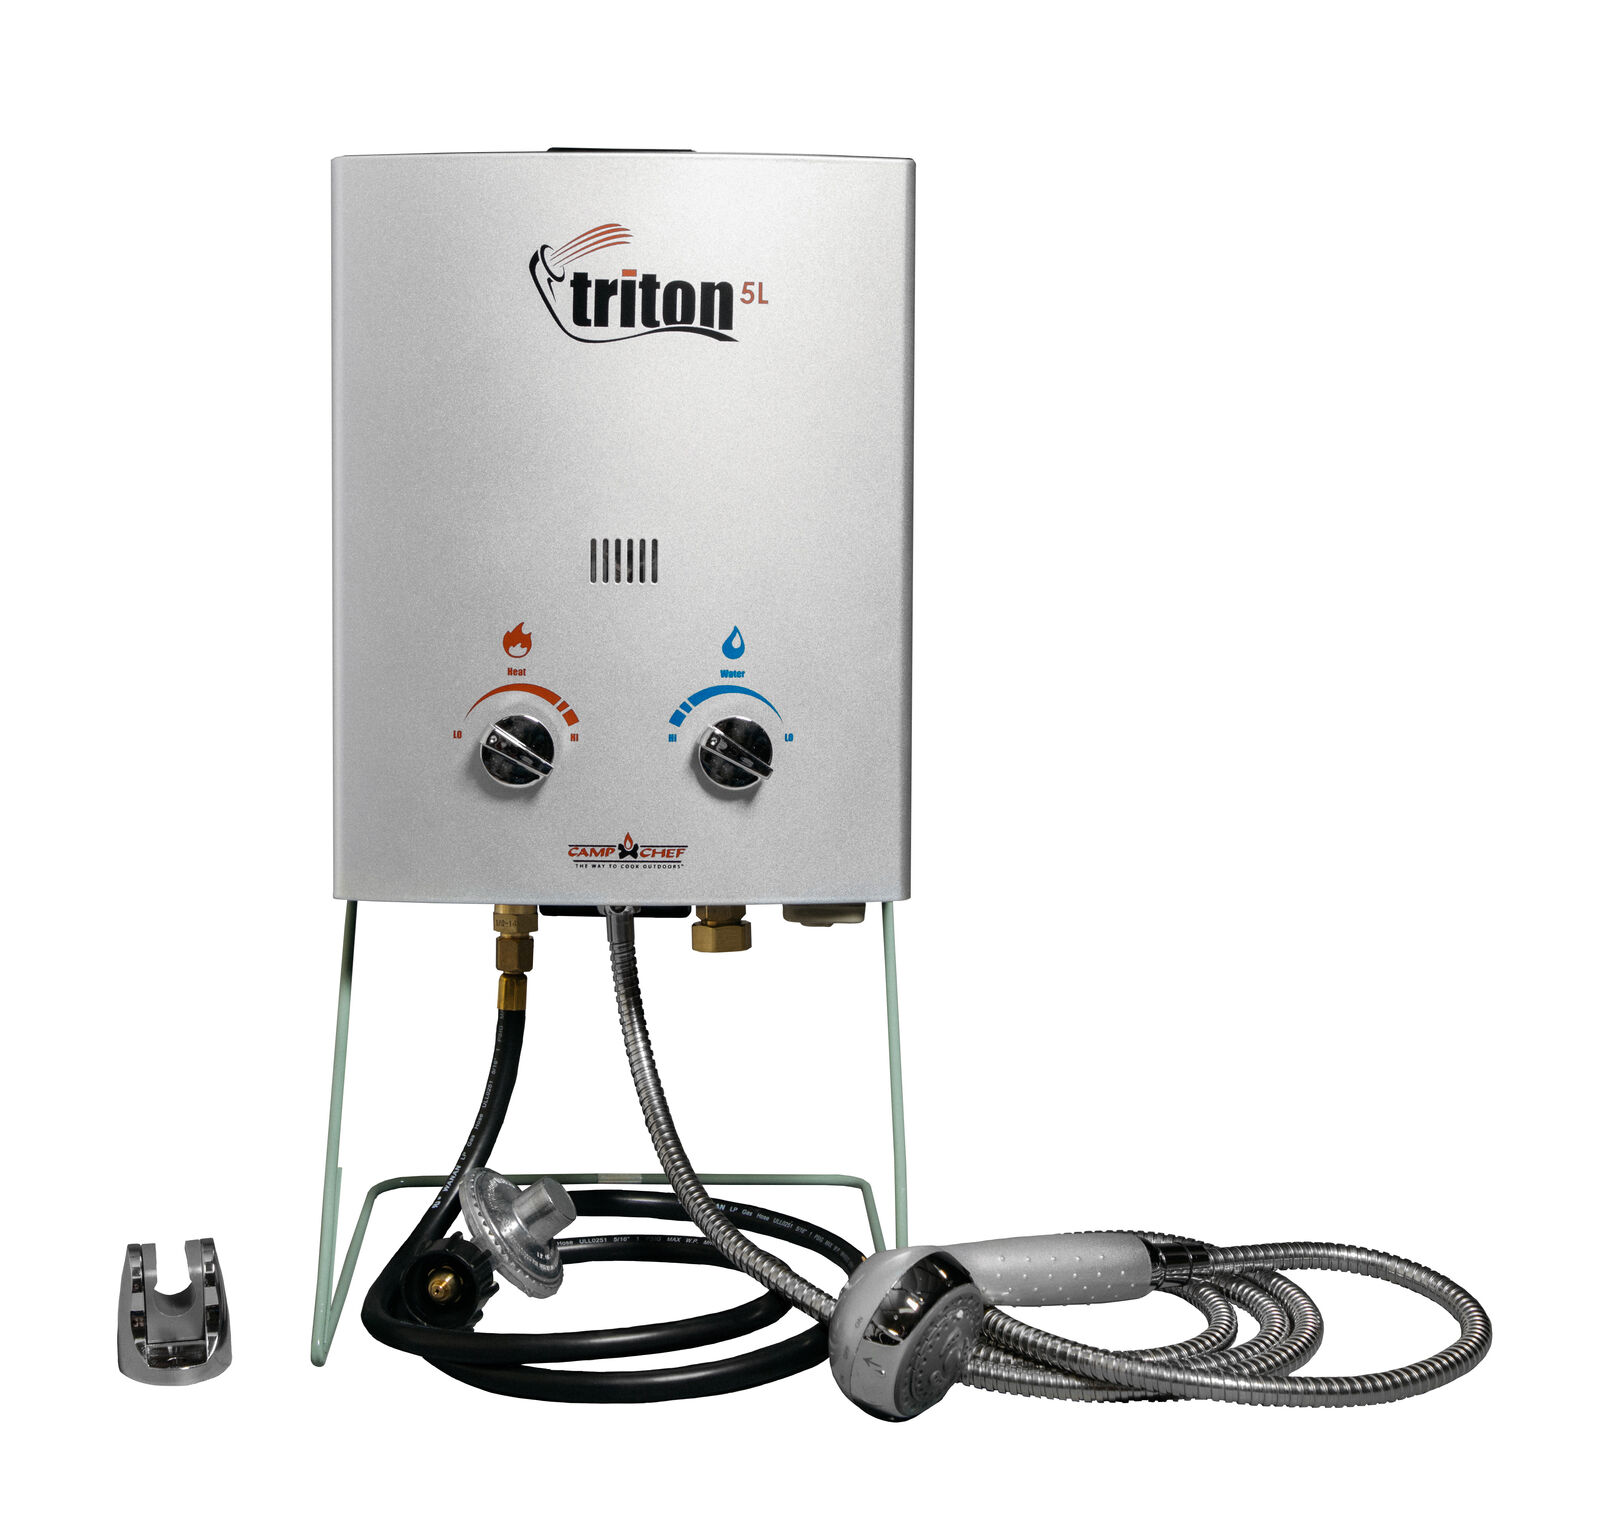 Camp Chef Triton 5 Liter  Gas Portable Hot Water Heater Shower Head RV Travel New  best fashion